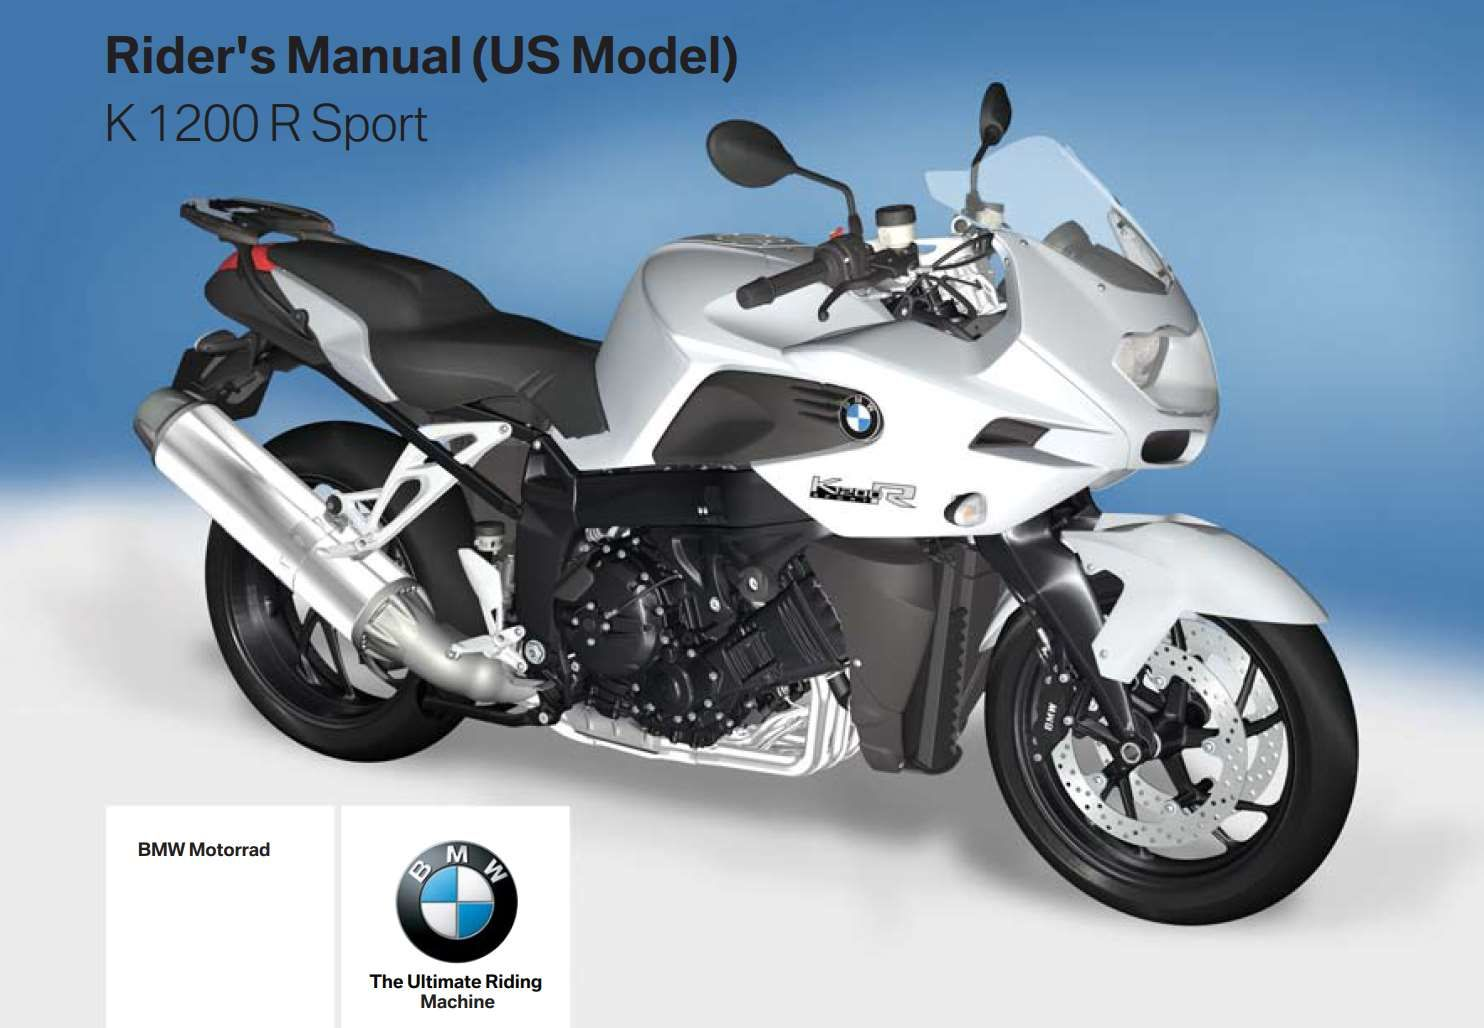 Bmw K 1200 R Sport 2nd  Us  2007 Owner U2019s Manual Has Been Published On Procarmanuals Com S